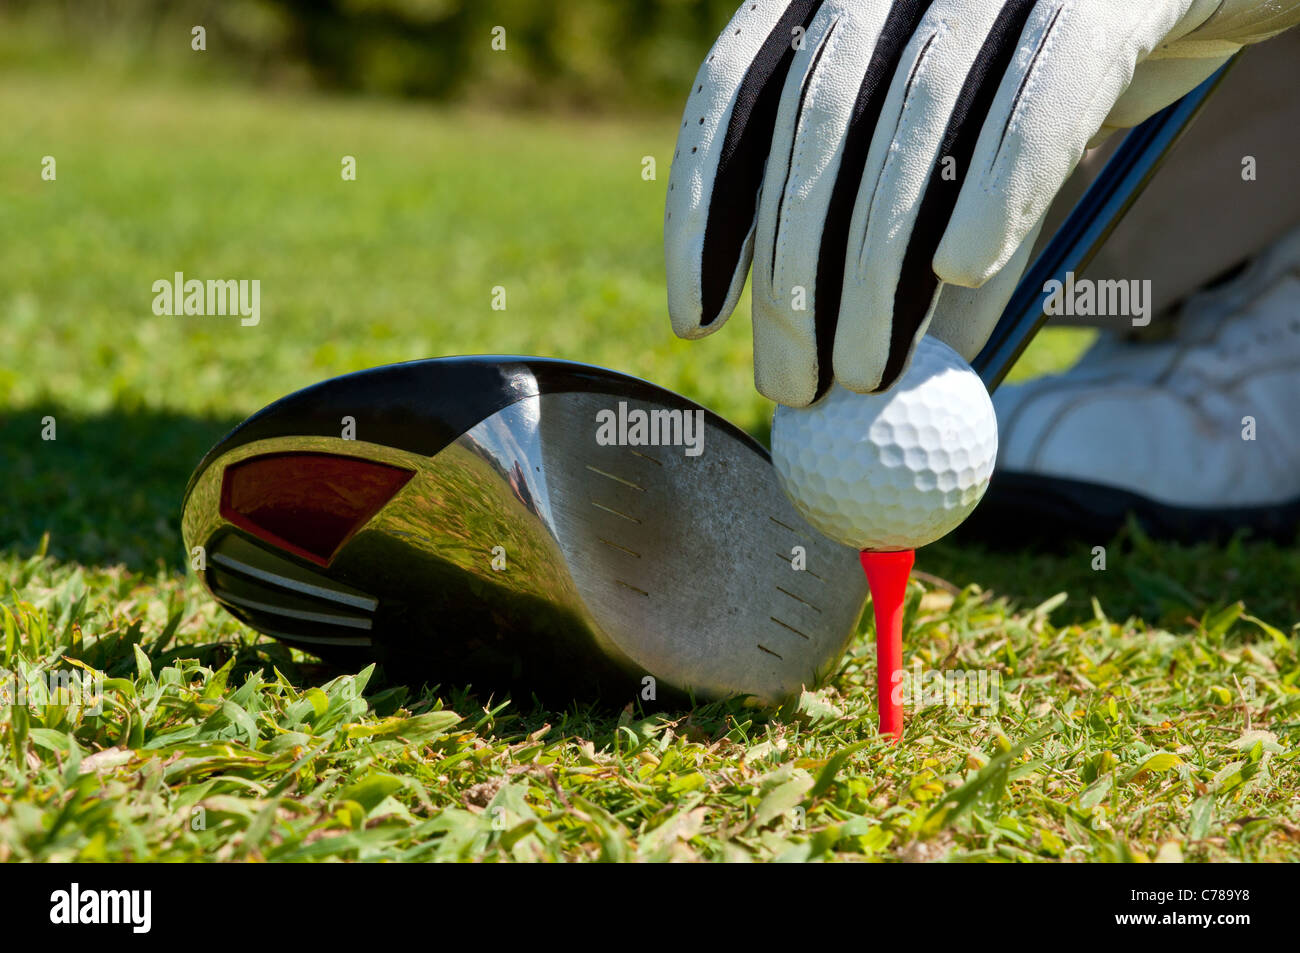 Hand placing a golf ball on a tee, next to a club. - Stock Image